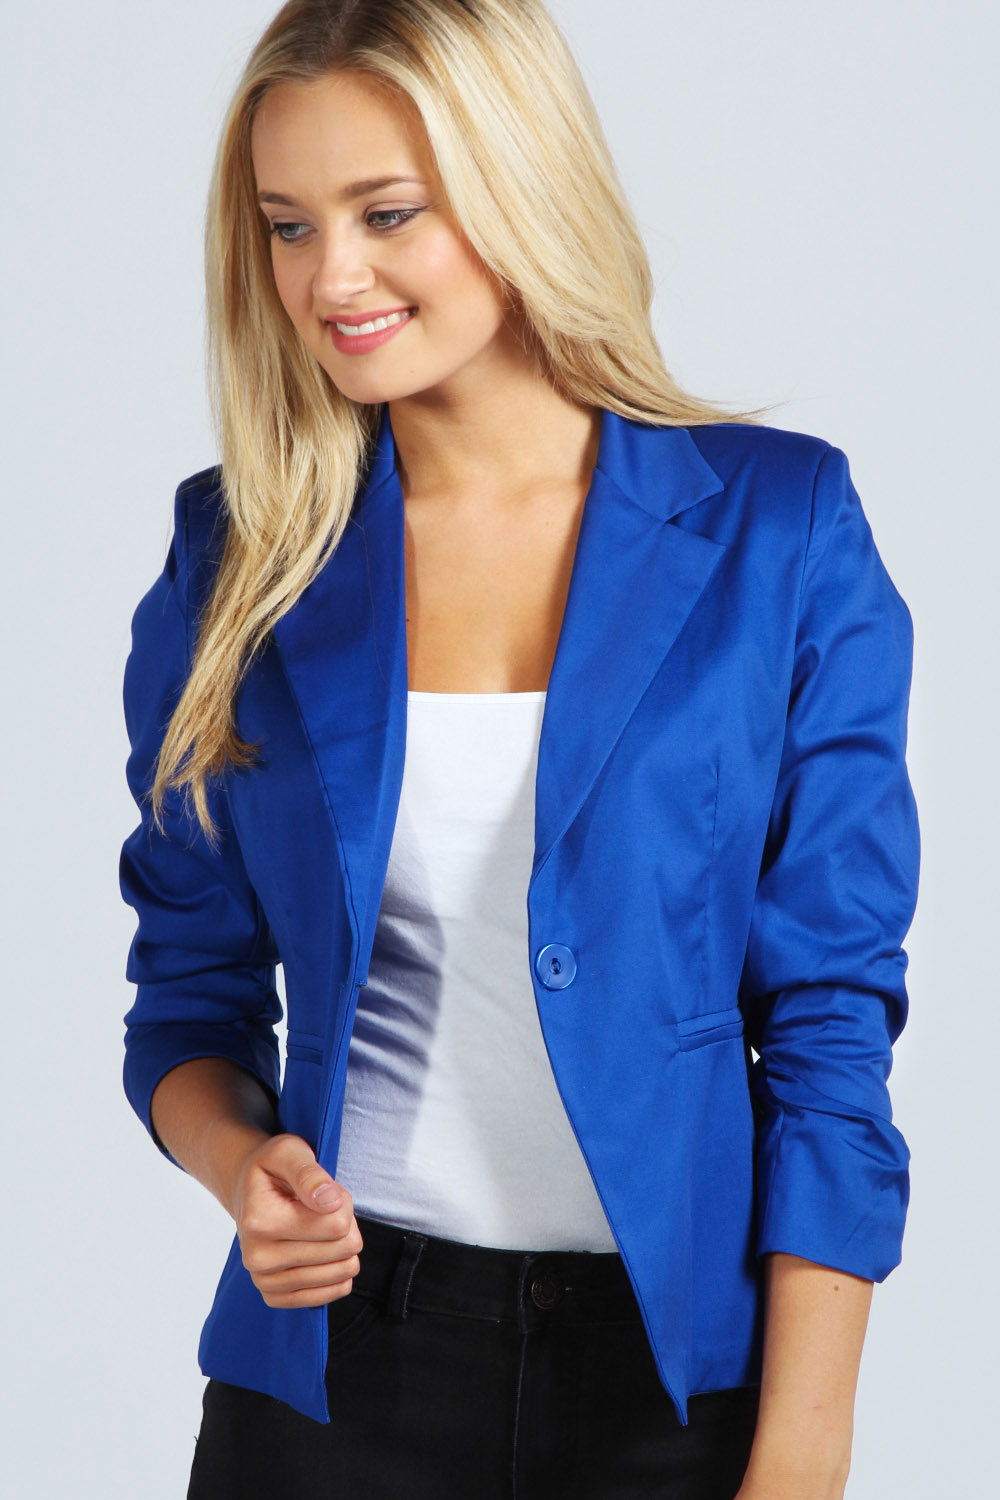 Cobalt Blue Blazer Womens Photo Album - Reikian